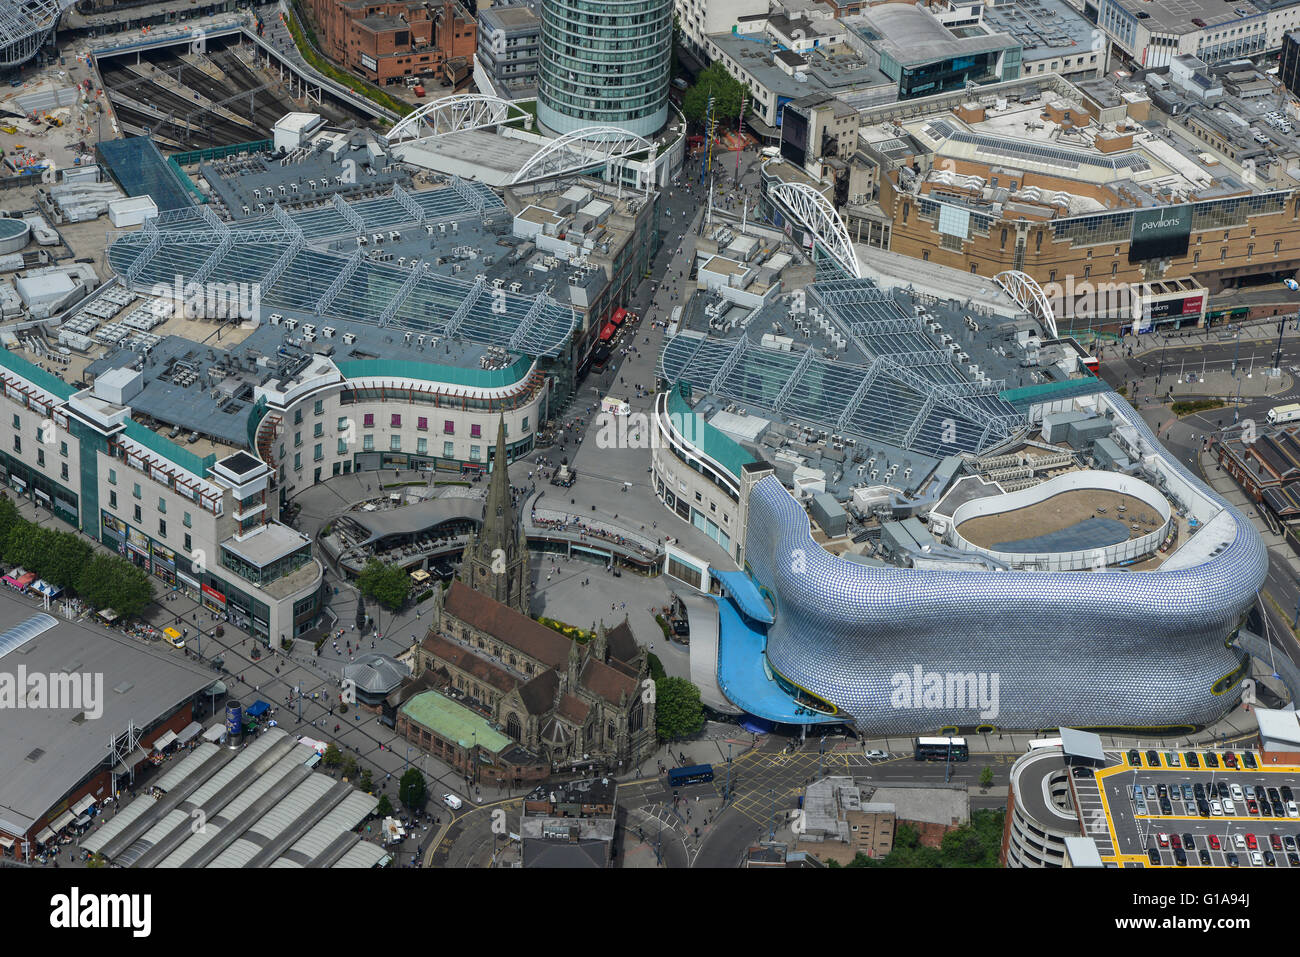 An aerial view of the Bull Ring shopping centre in Birmingham West